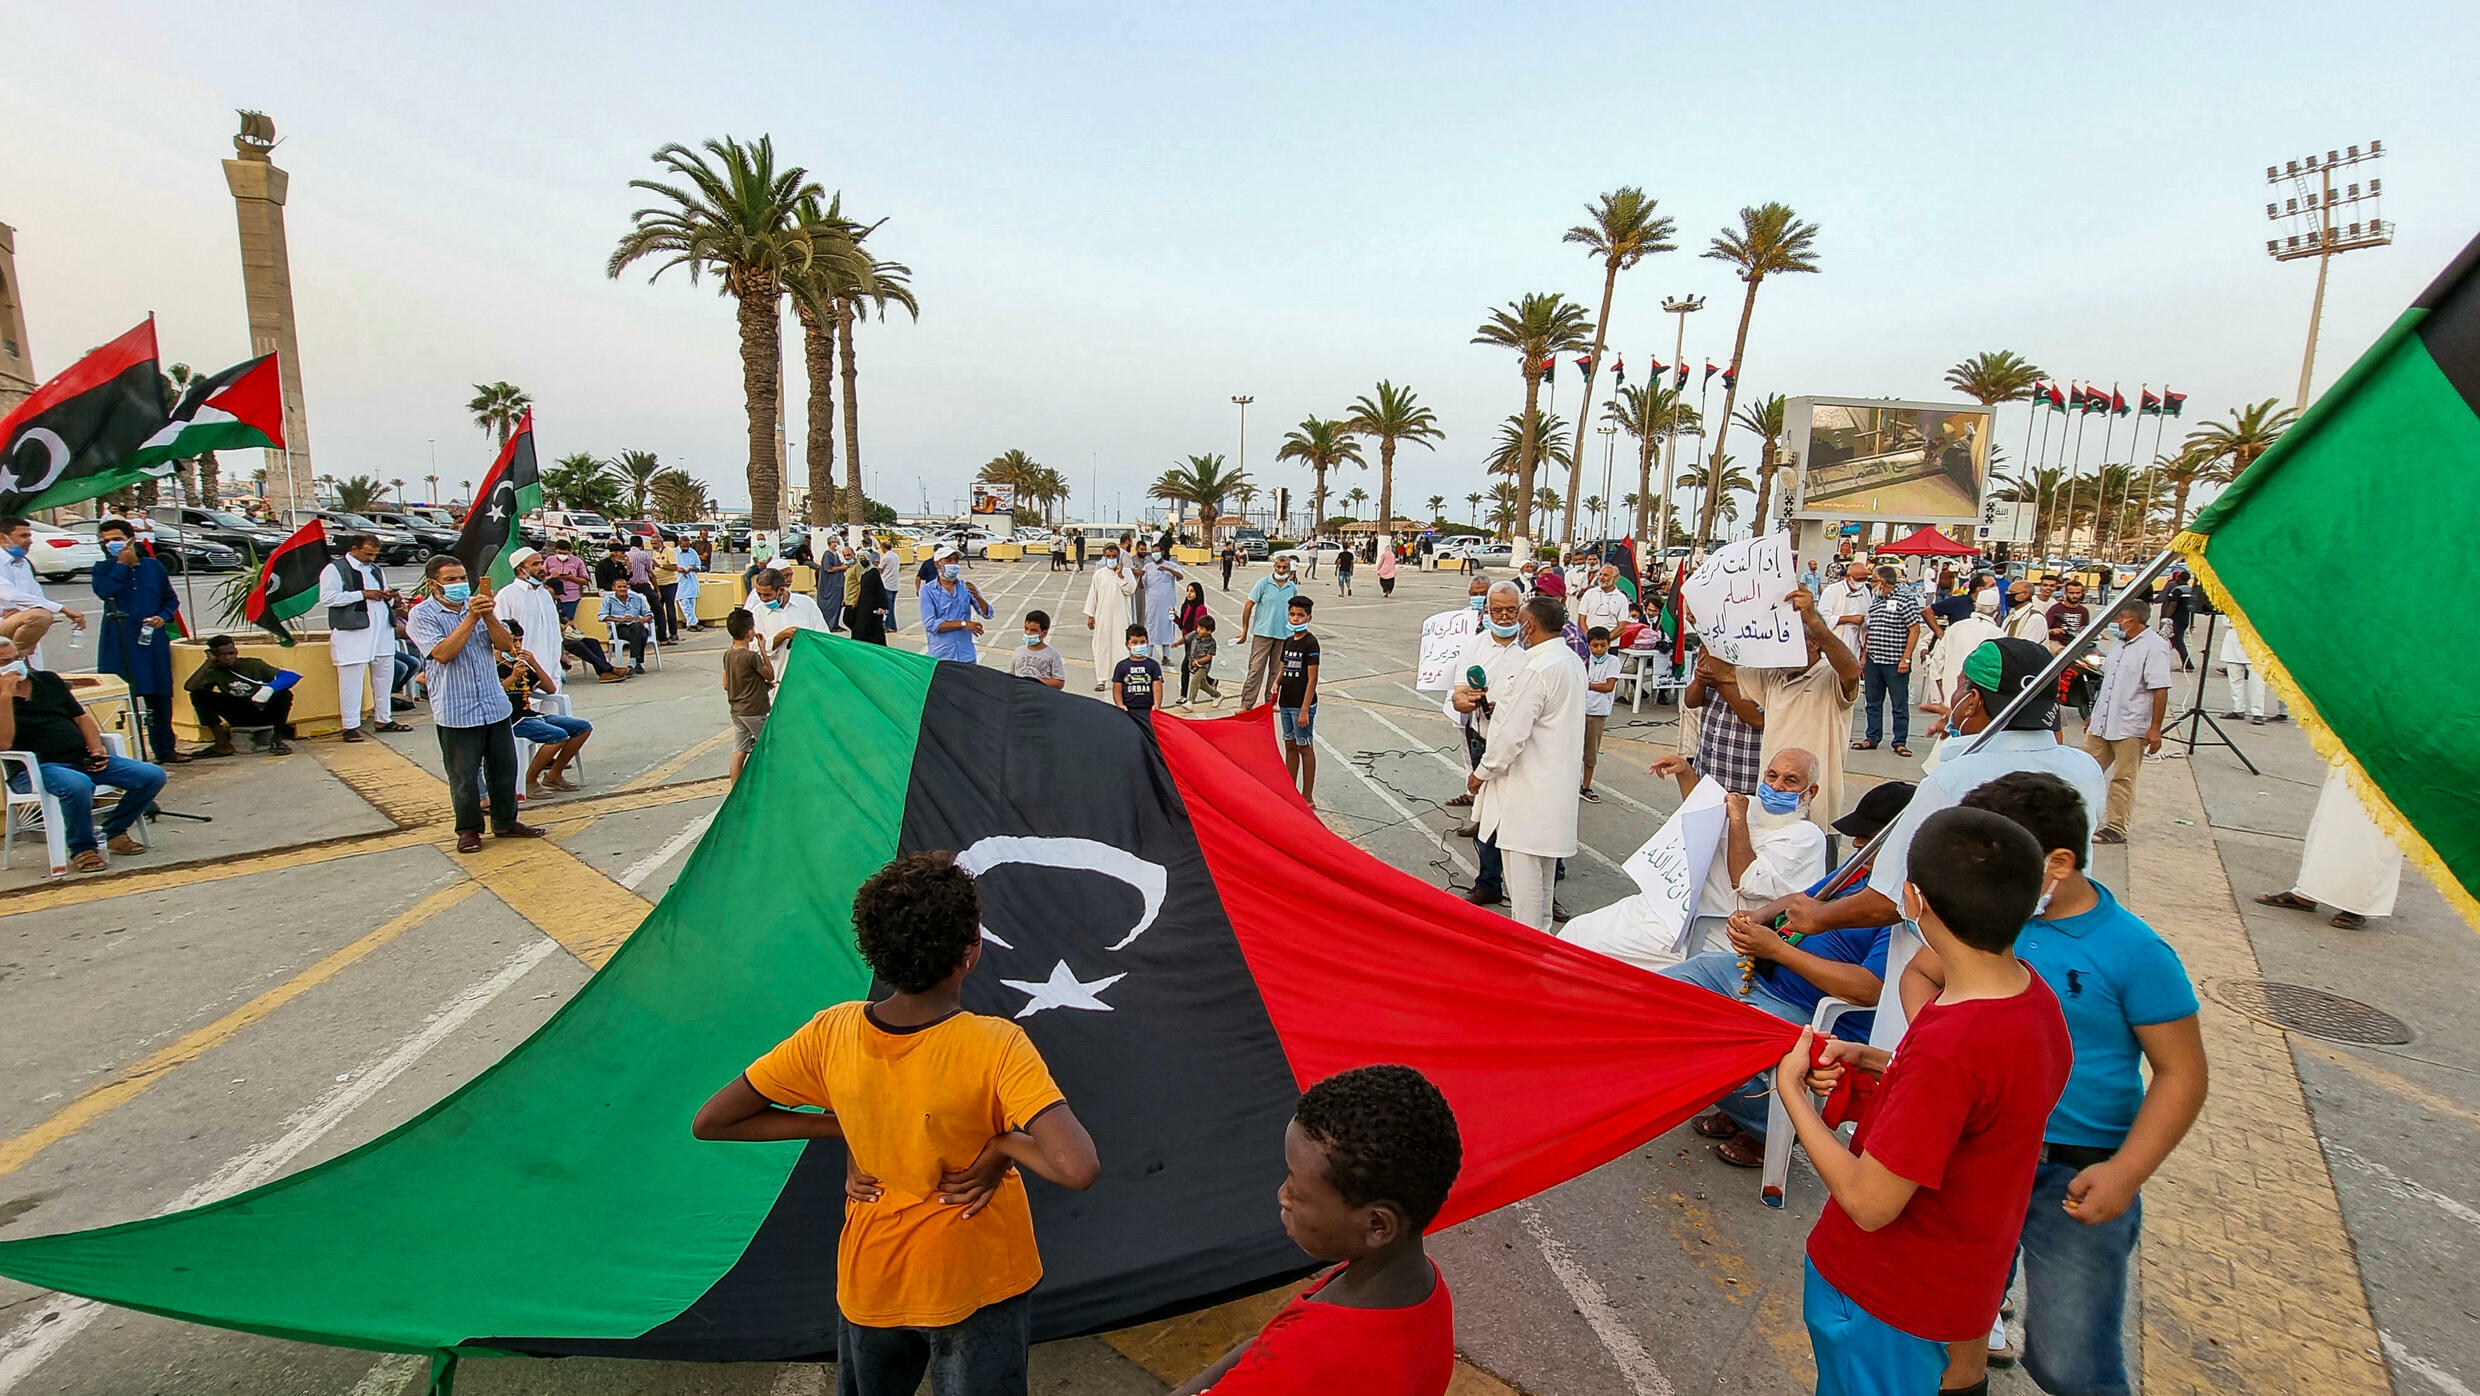 People gather with Libyan national flags at the Martyrs' Square in the centre of Tripoli on August 20, to mark the 10th anniversary of the city's capture from the forces of former leader Moamer Kadhafi